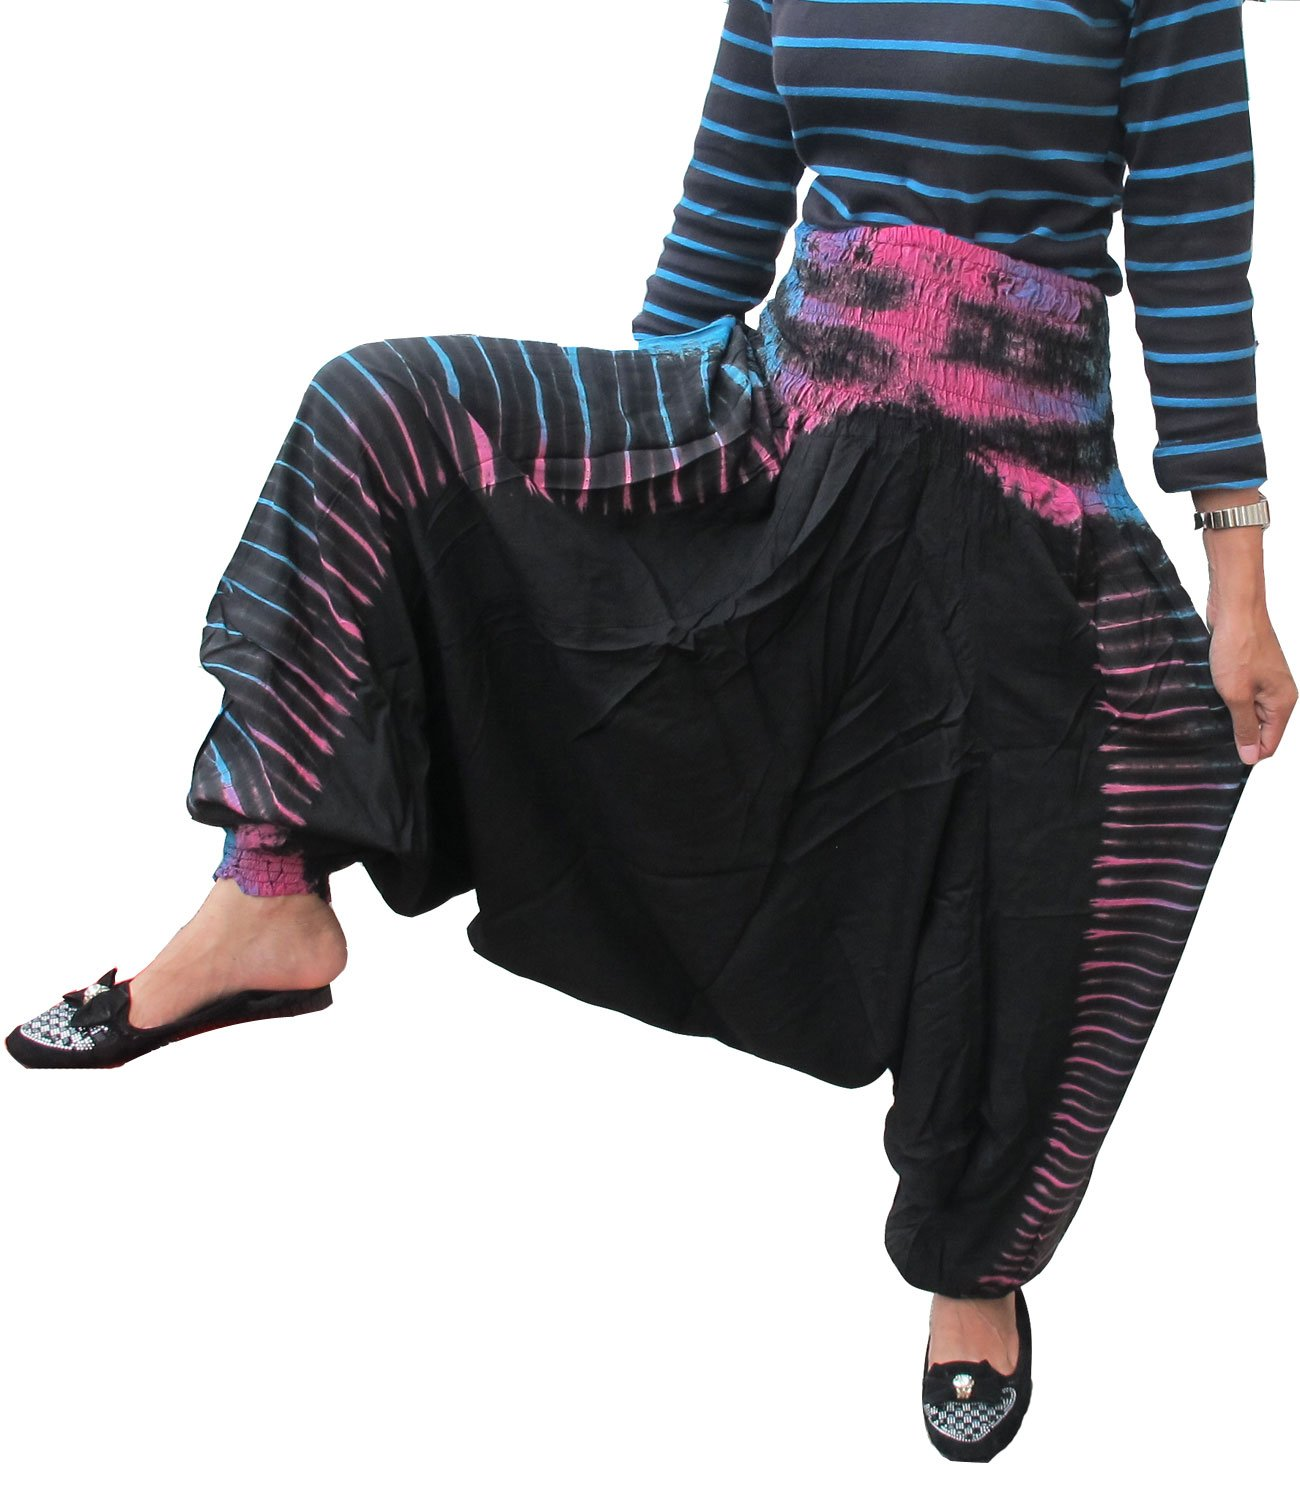 BEAUTIFUL HILL TRIBE STYLE GENIUNE RAYON TIE DYE Genuine Rayon Cotton Hippy Hippie Boho Genie Ali Baba Thailand